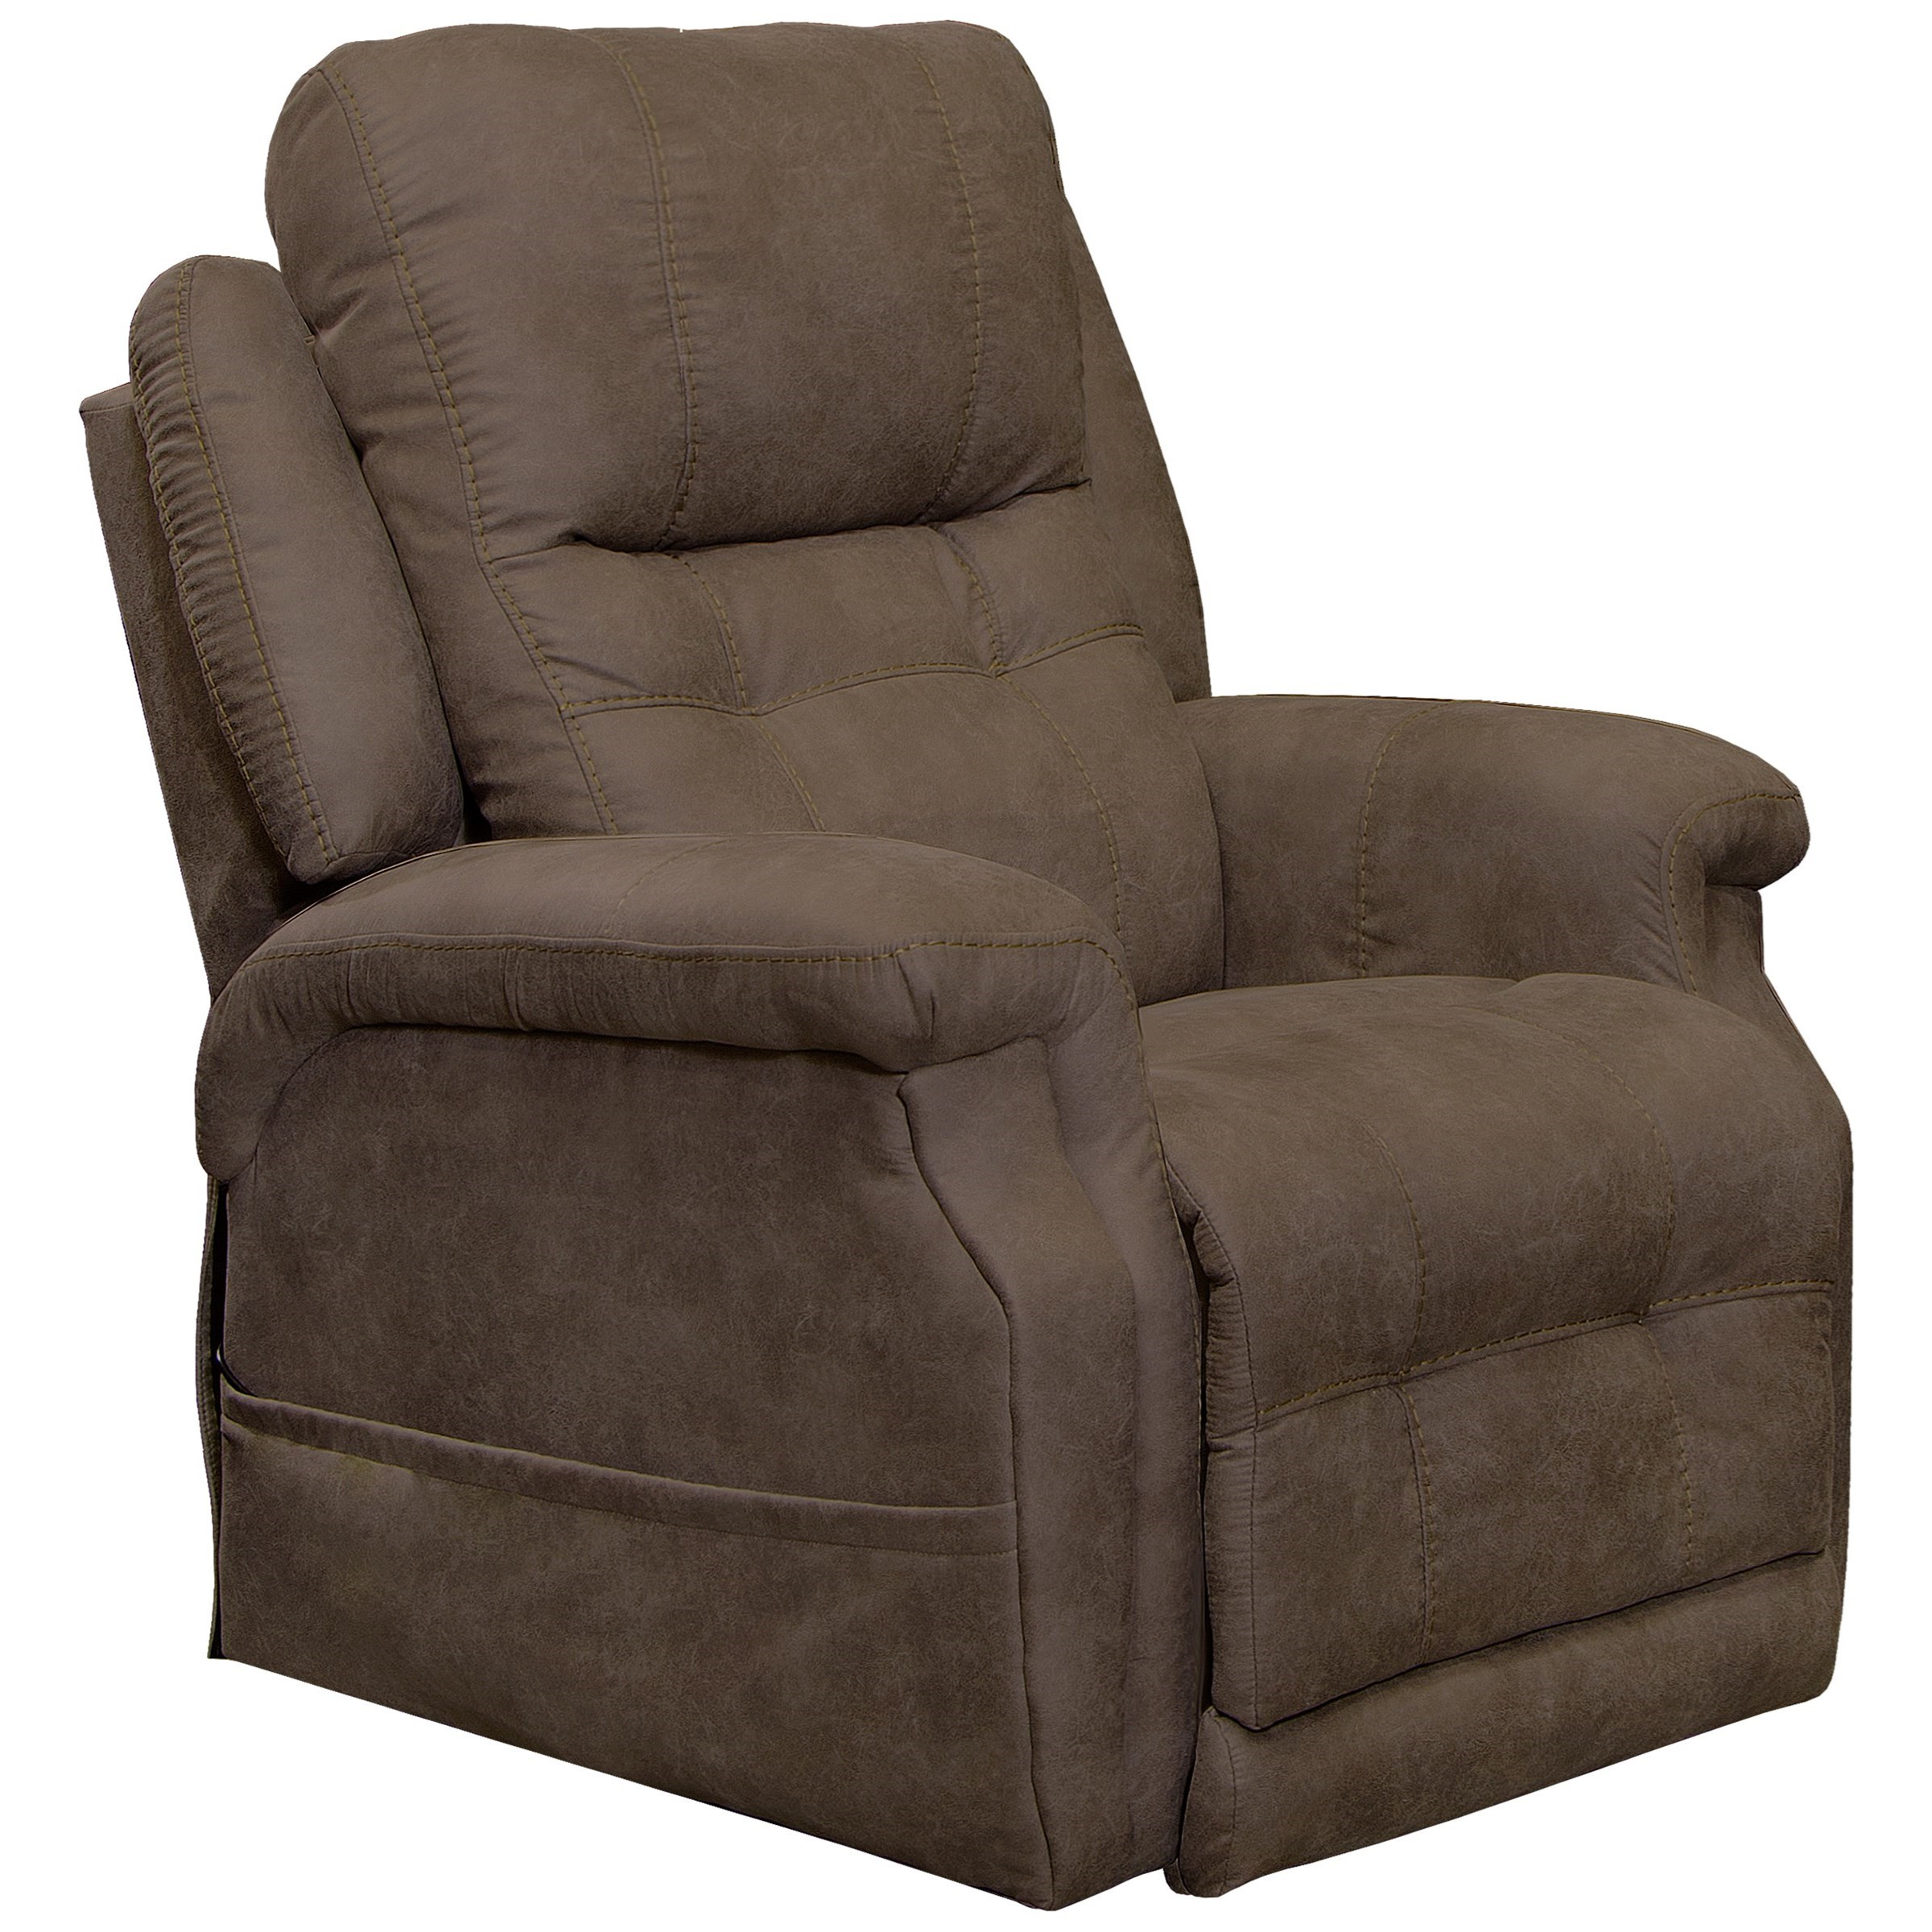 Haywood  CAT Power Headrest Lay Flat Lift Recliner by Catnapper at Value City Furniture